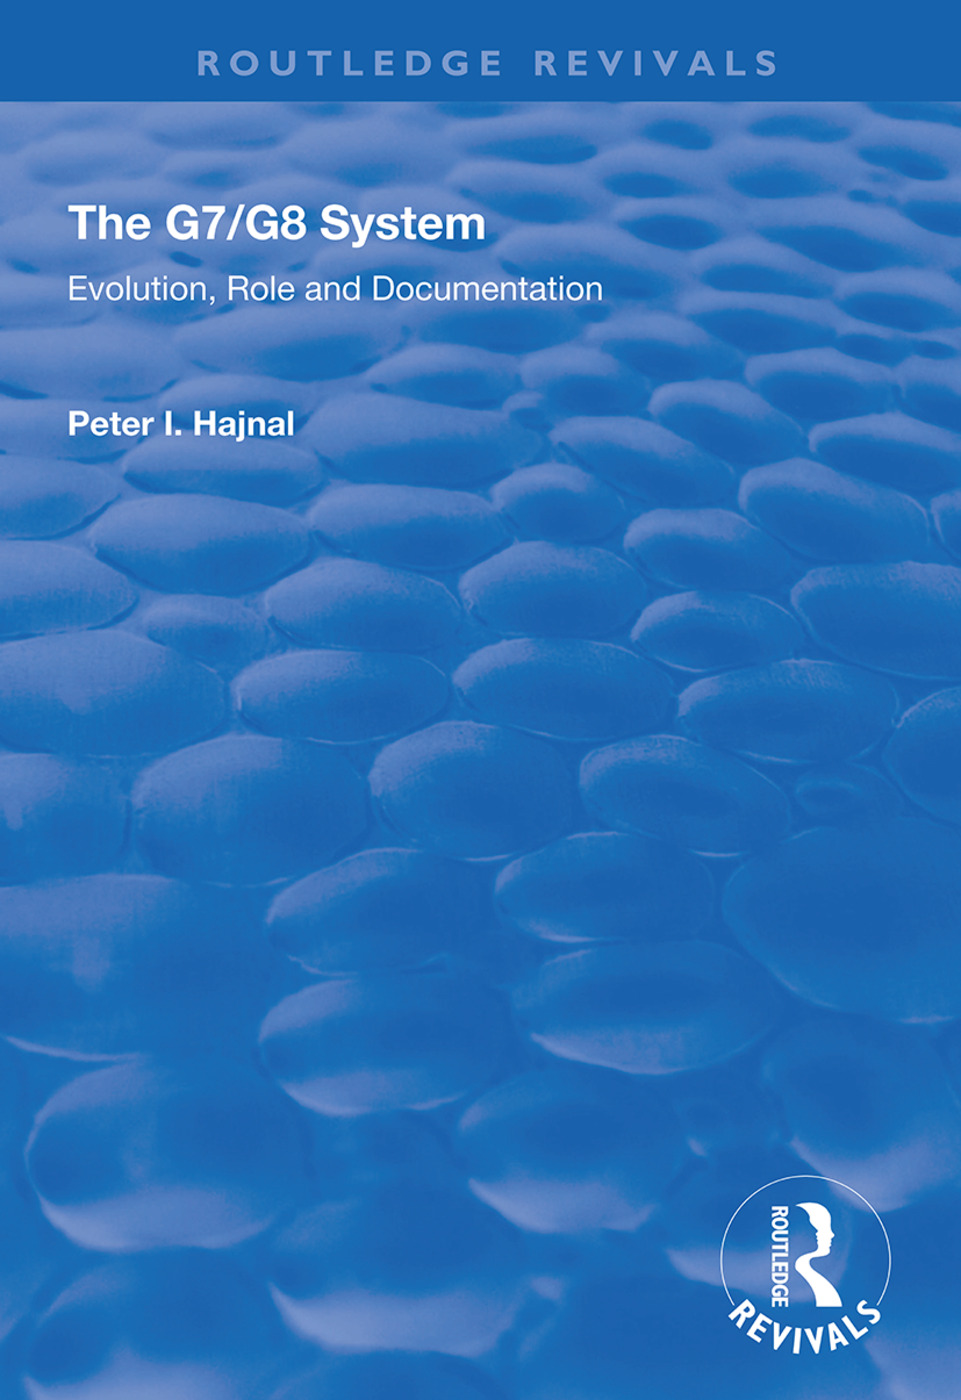 The G7/G8 System: Evolution, Role and Documentation book cover